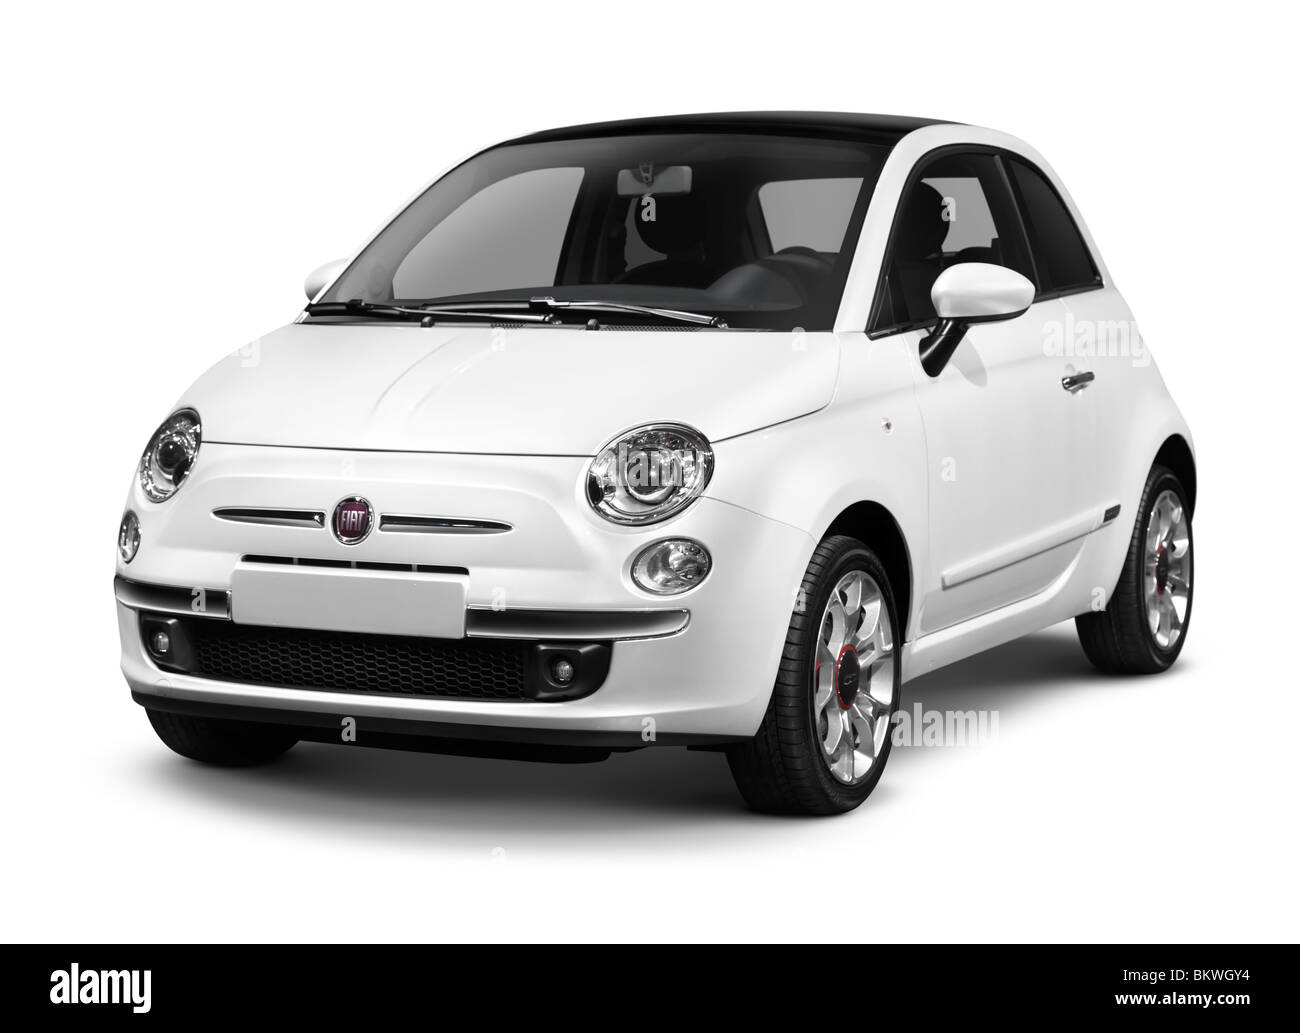 hight resolution of 2010 fiat nuova 500 small city car isolated on white background with clipping path stock